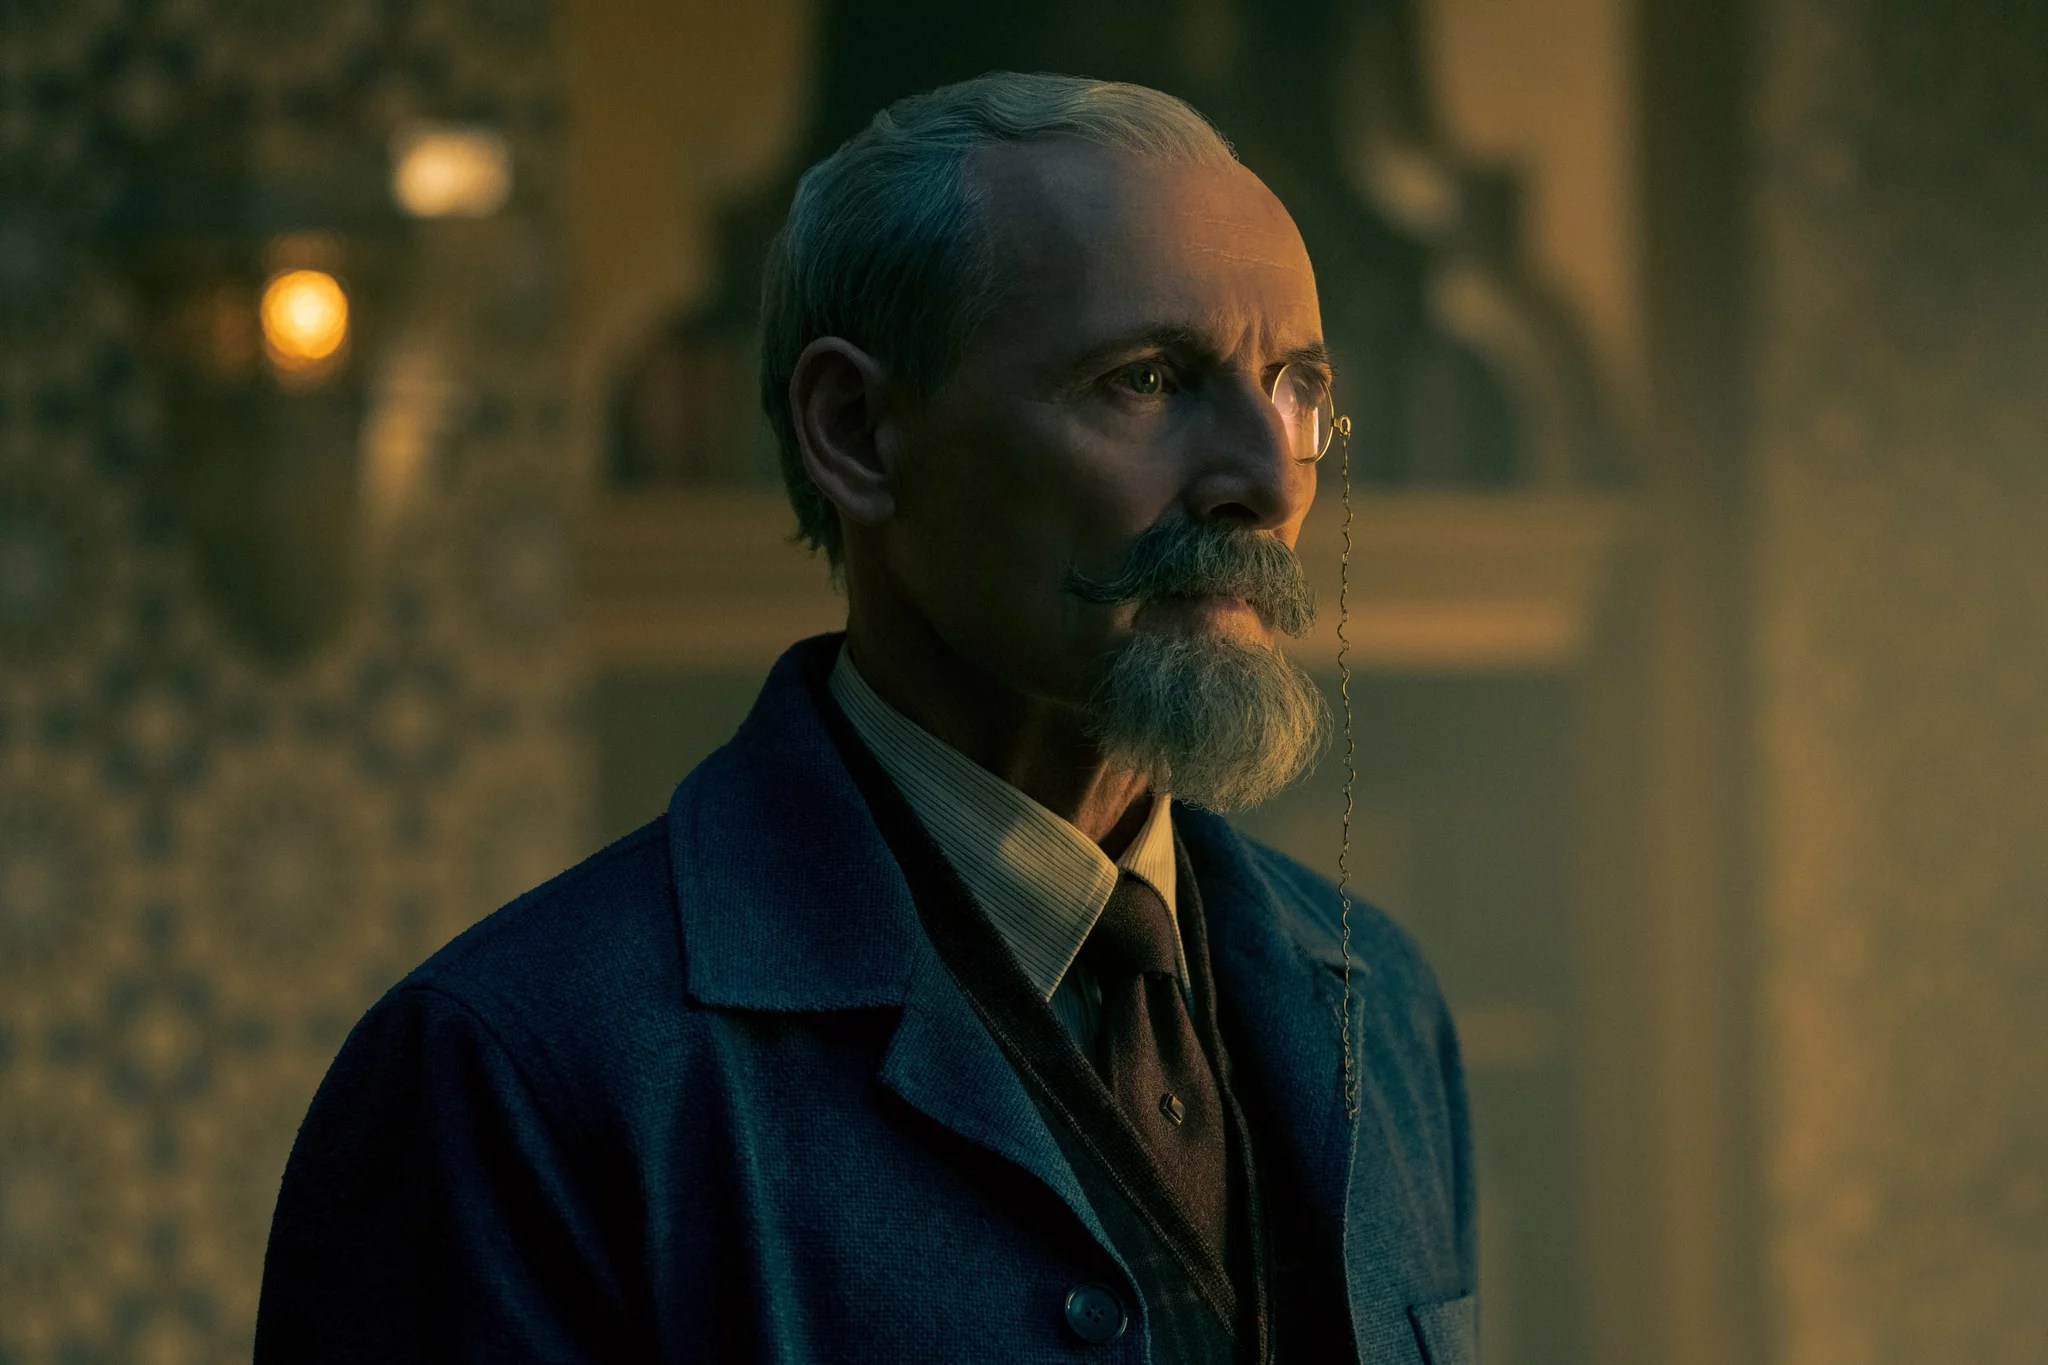 THE UMBRELLA ACADEMY, Colm Feore, The End of Something, (Season 2, ep. 210, aired July 31, 2020). photo: Christos Kalohoridis / Netflix / Courtesy Everett Collection